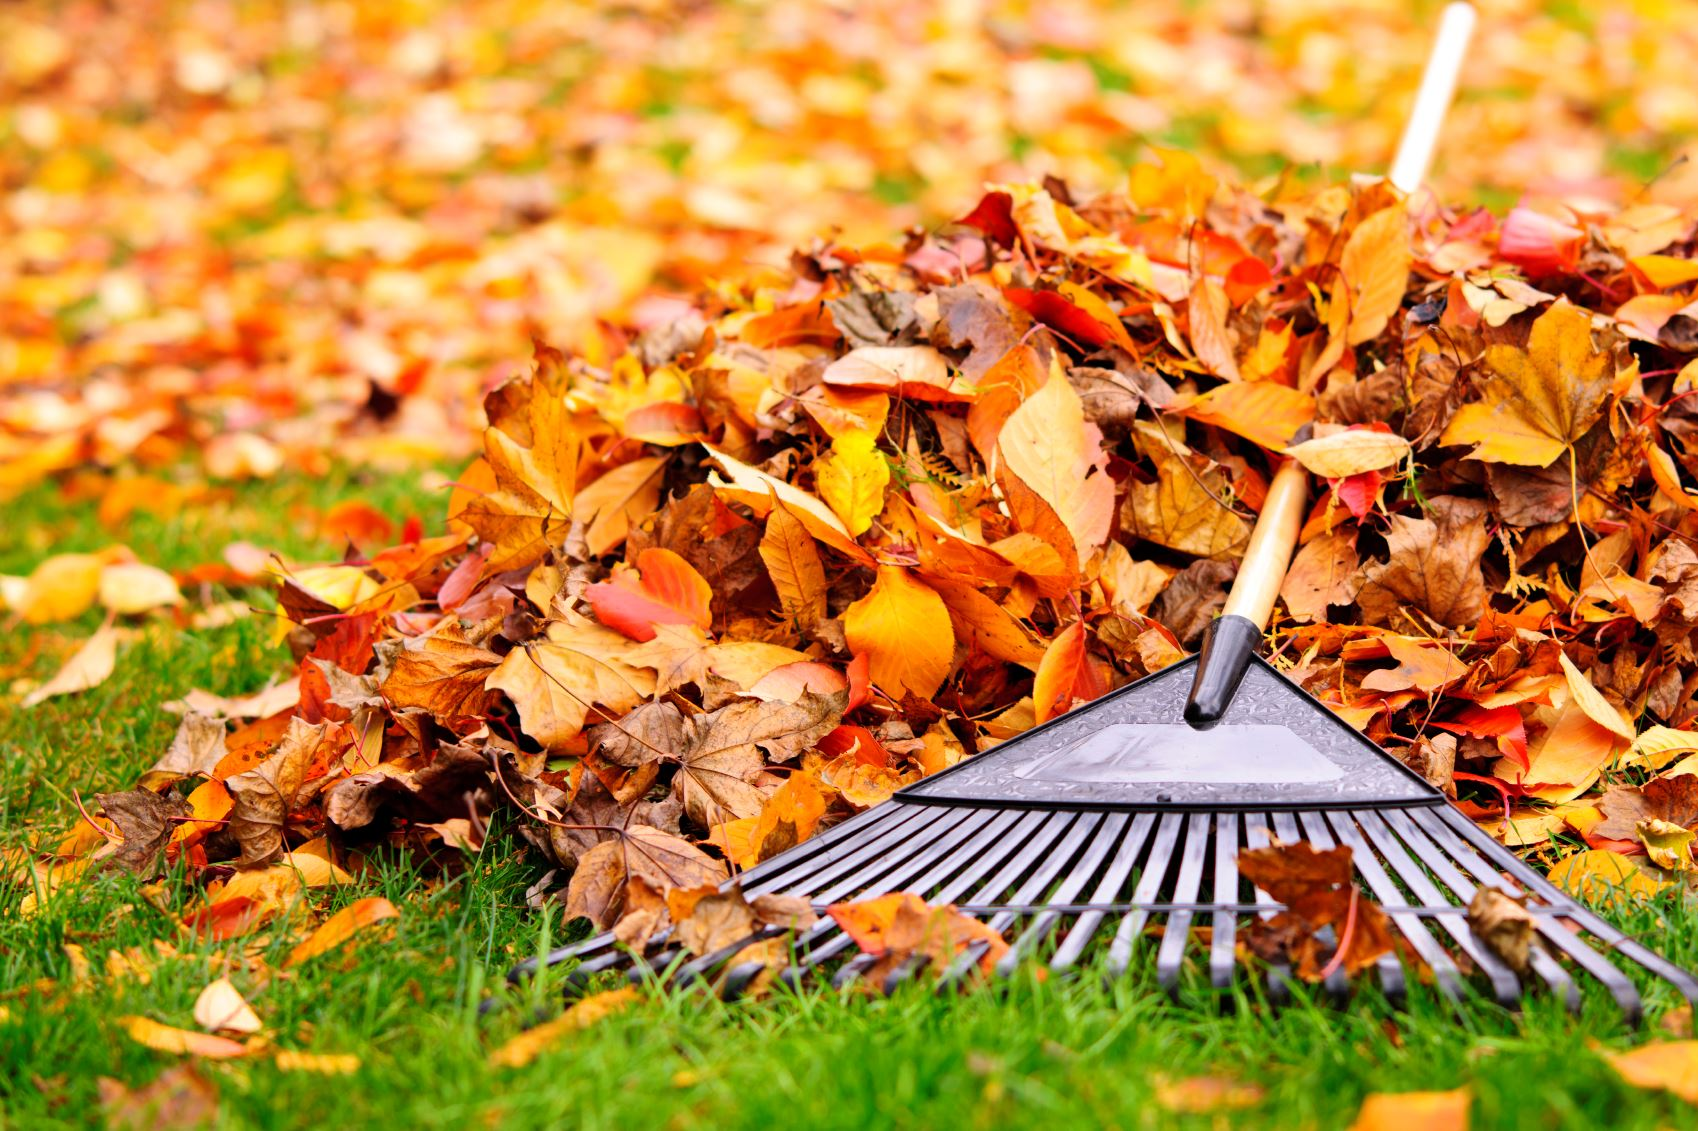 Fall Rake on Leaf Pile